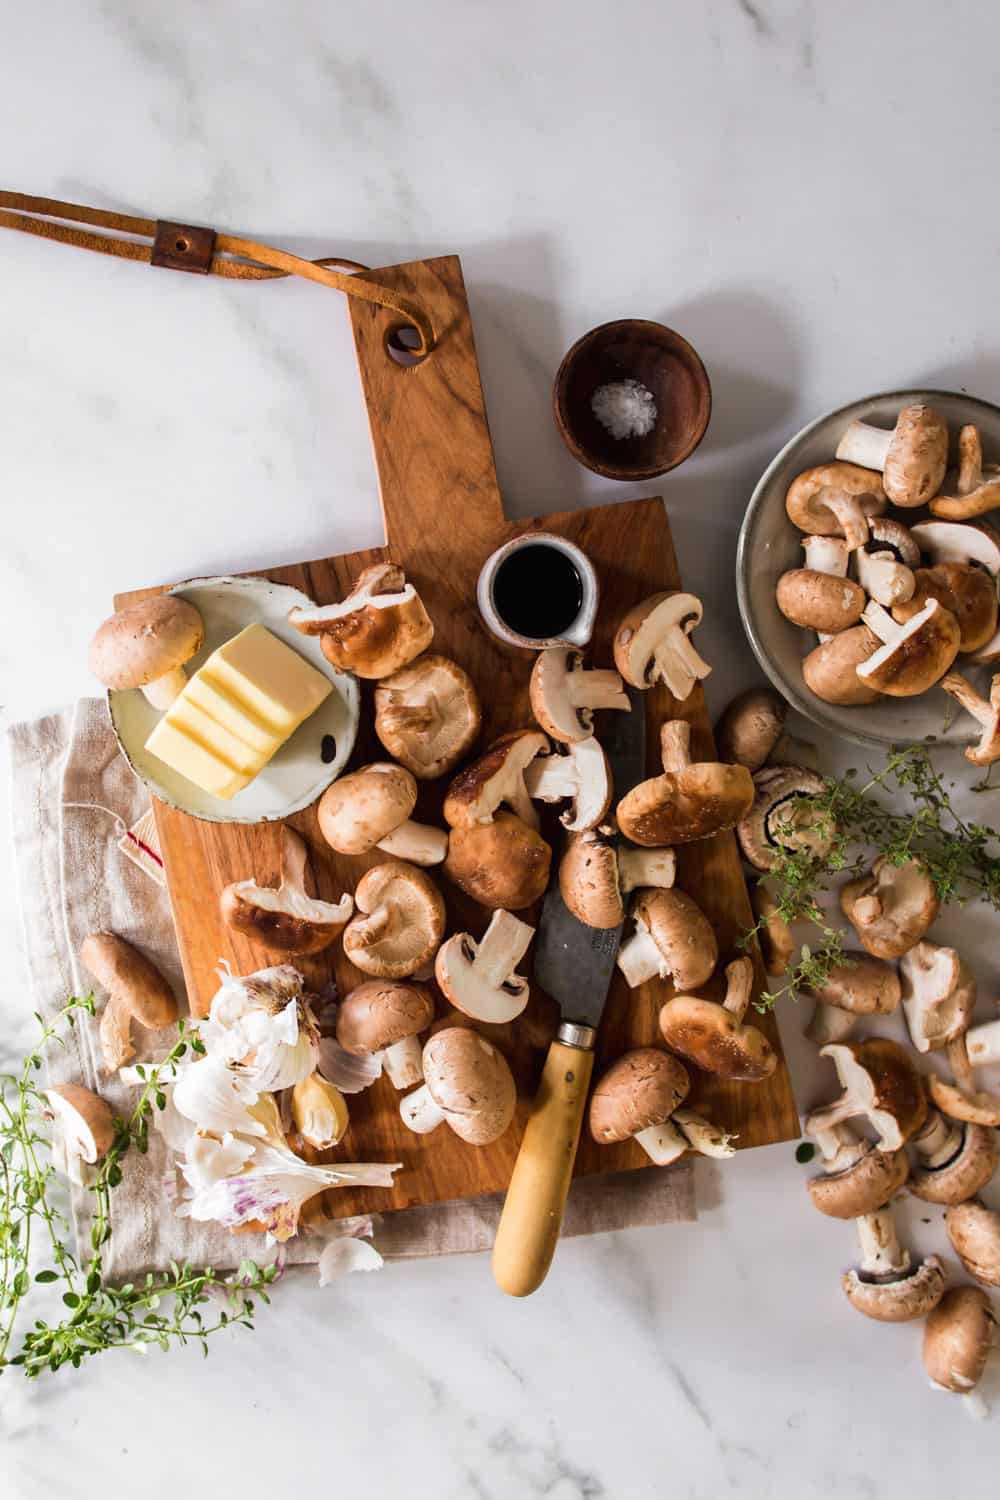 Chopped mushrooms on a cutting board. Butter and herbs on the side.